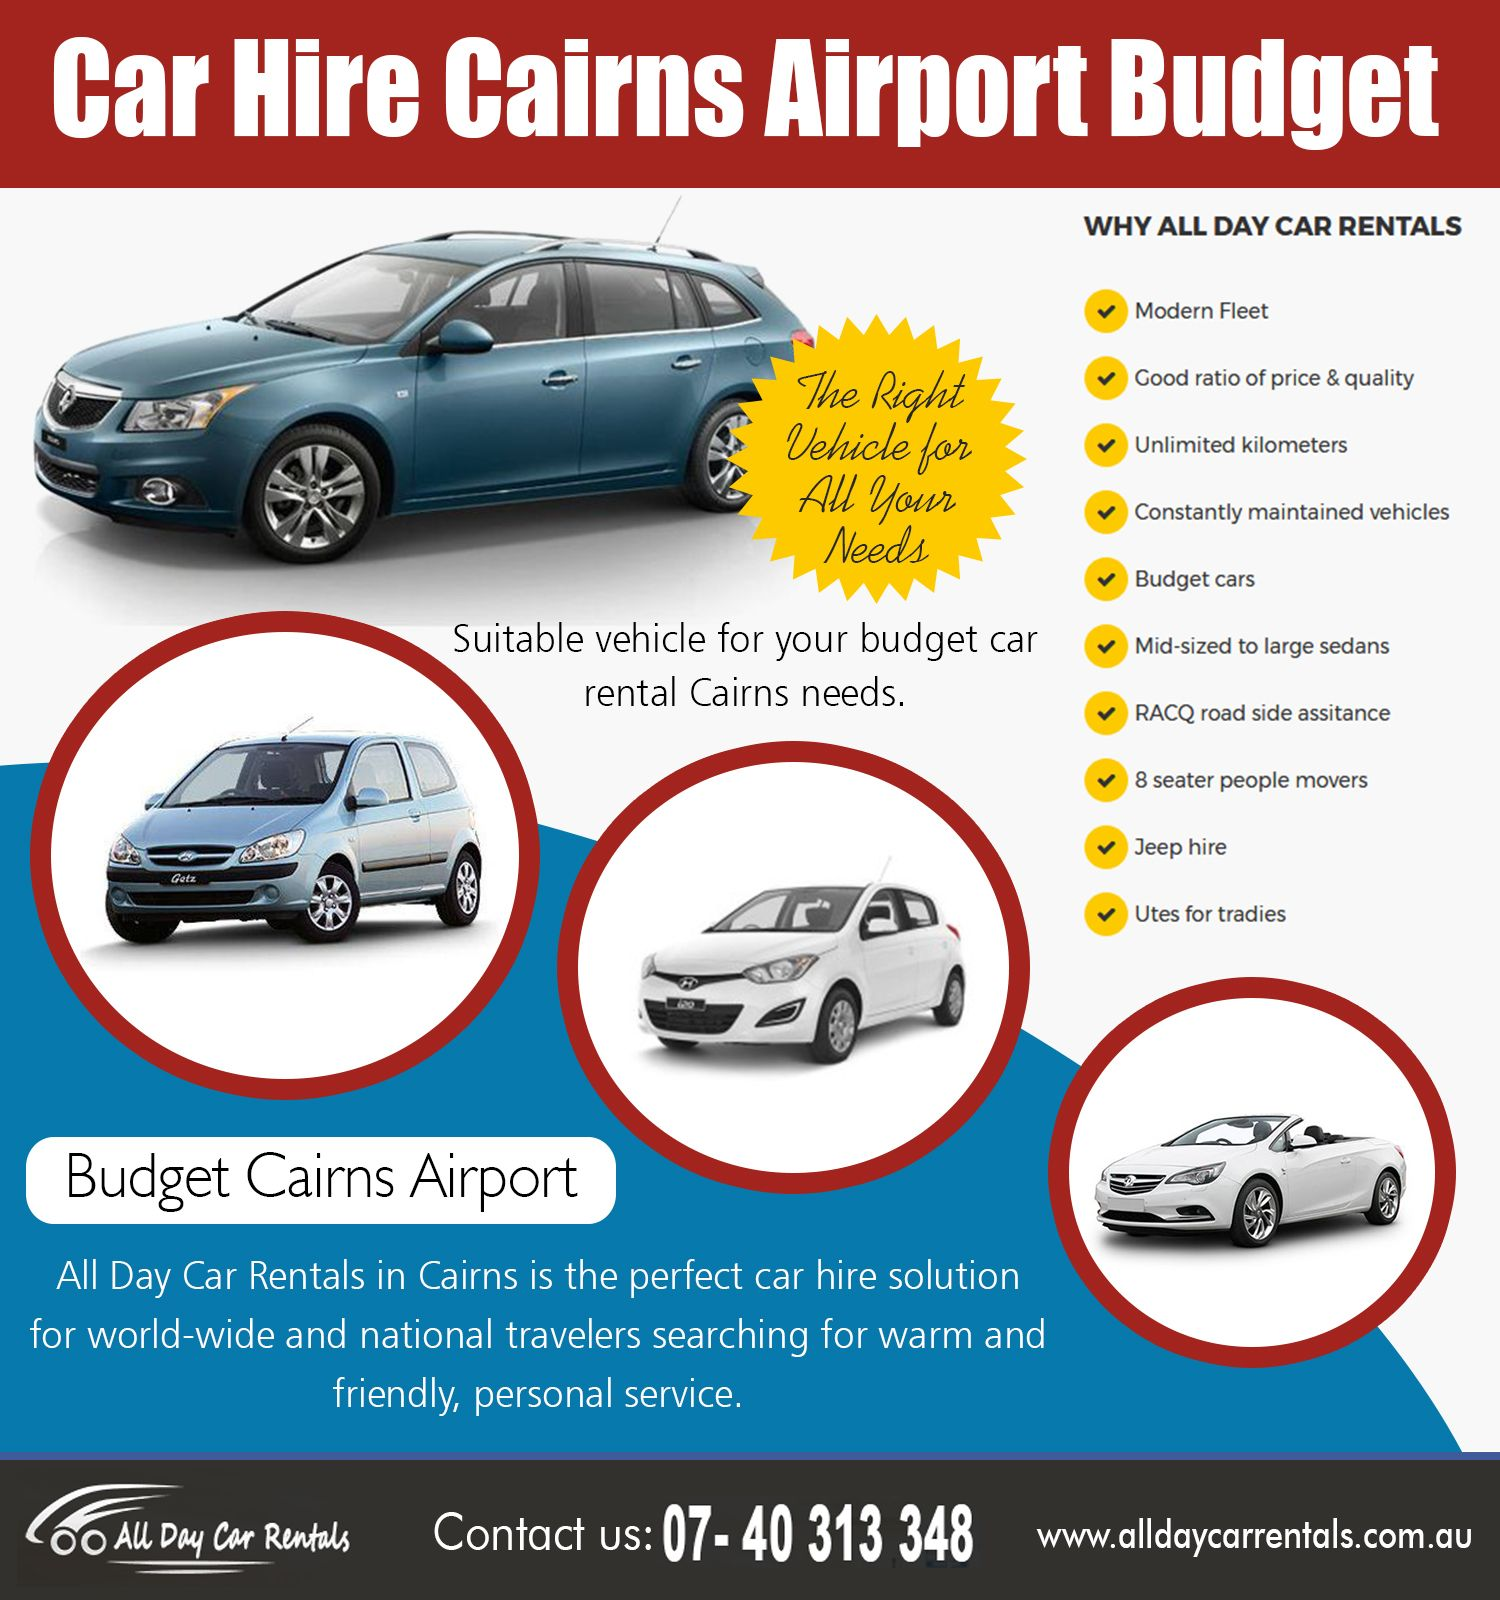 Budget Car Rental Cairns Airport Budget Car Rental Car Hire